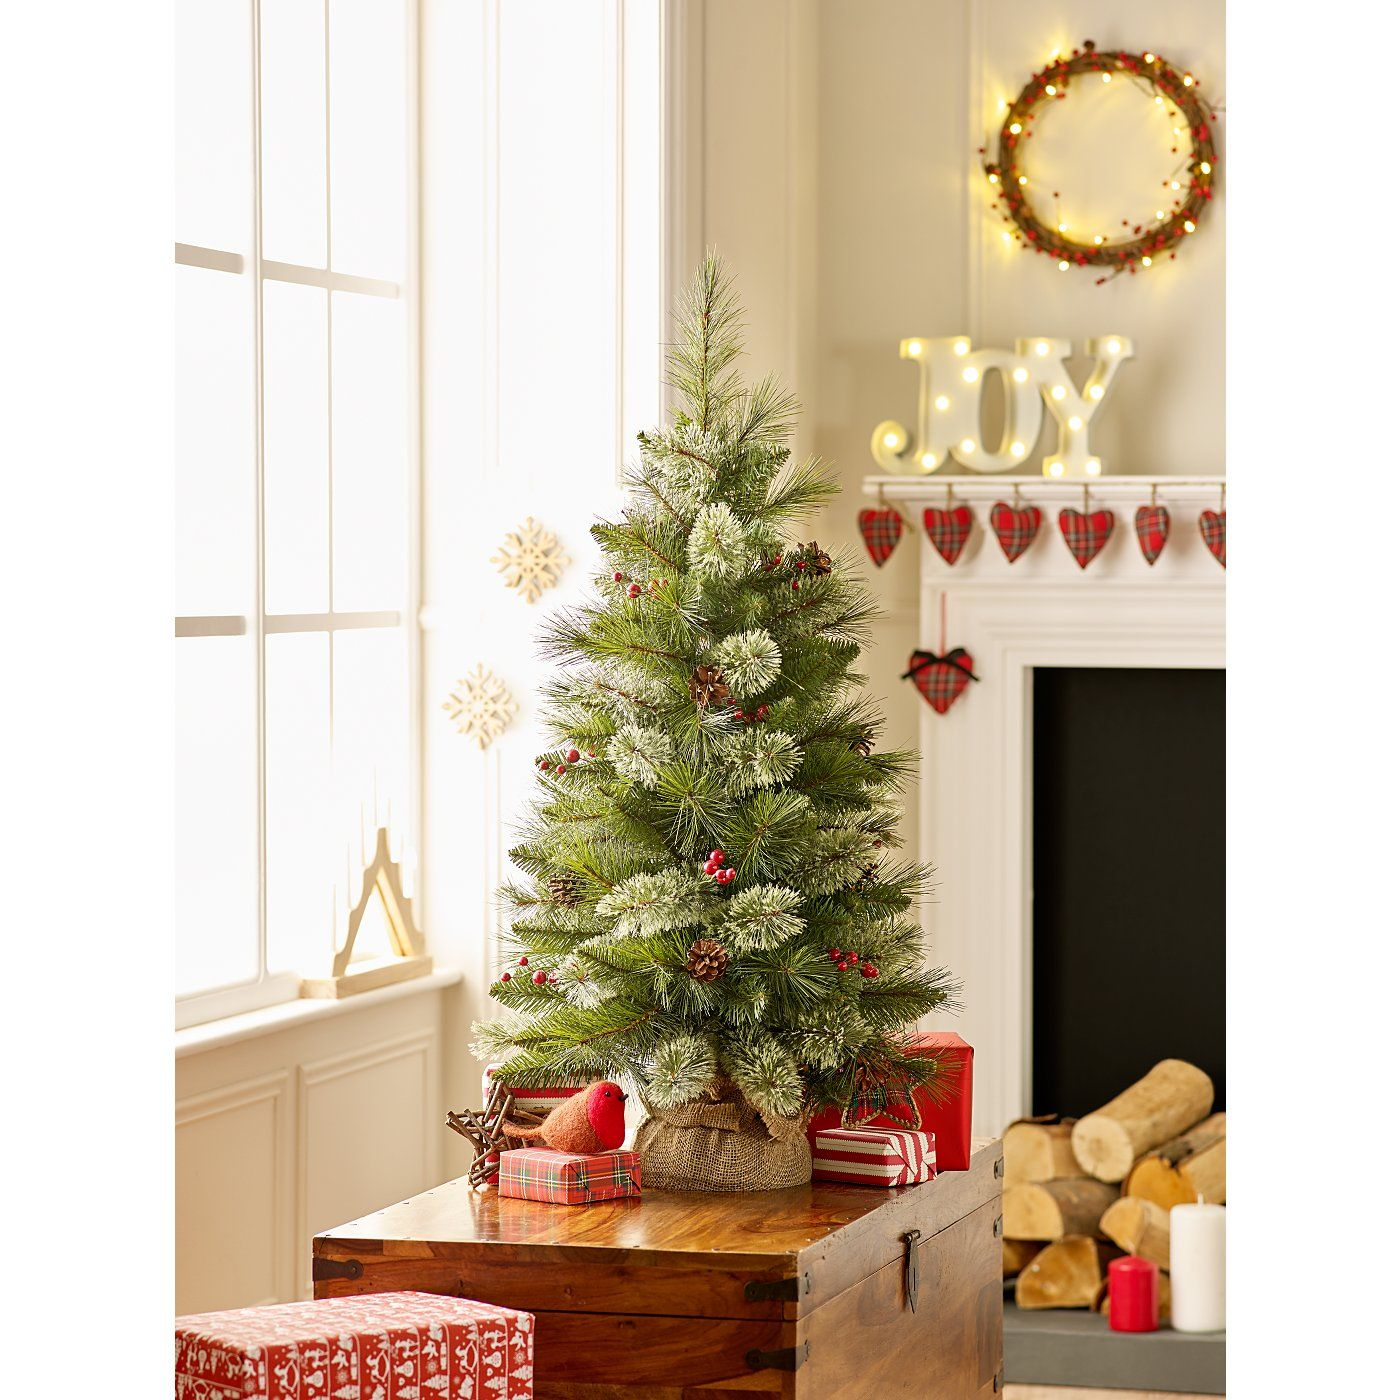 Asda Christmas Trees: 3 Ft Cashmere Feel Pine Cone And Berry Tree